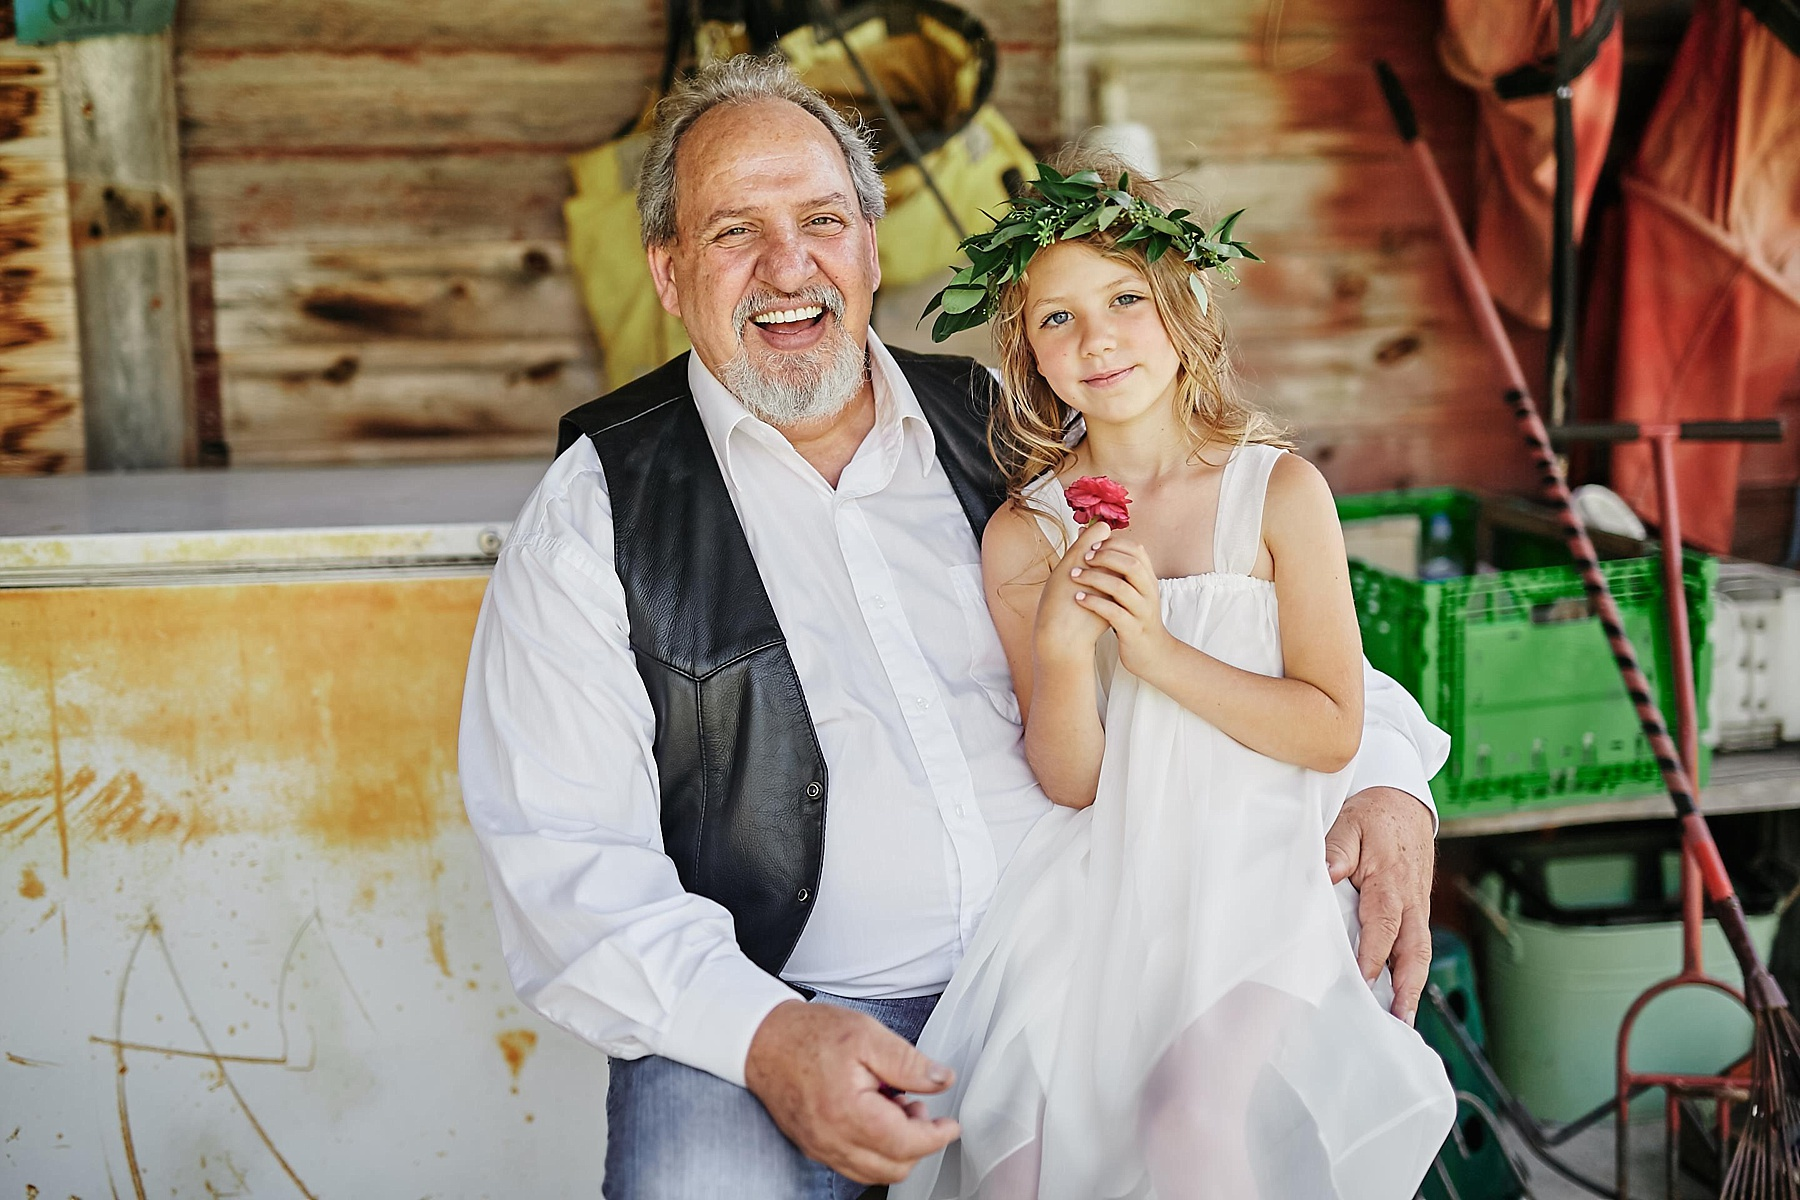 Fairhaven-Farm-South-Haven-Minnesota-Barn-Outdoor-Wedding-Josh-Kailey_1017.jpg